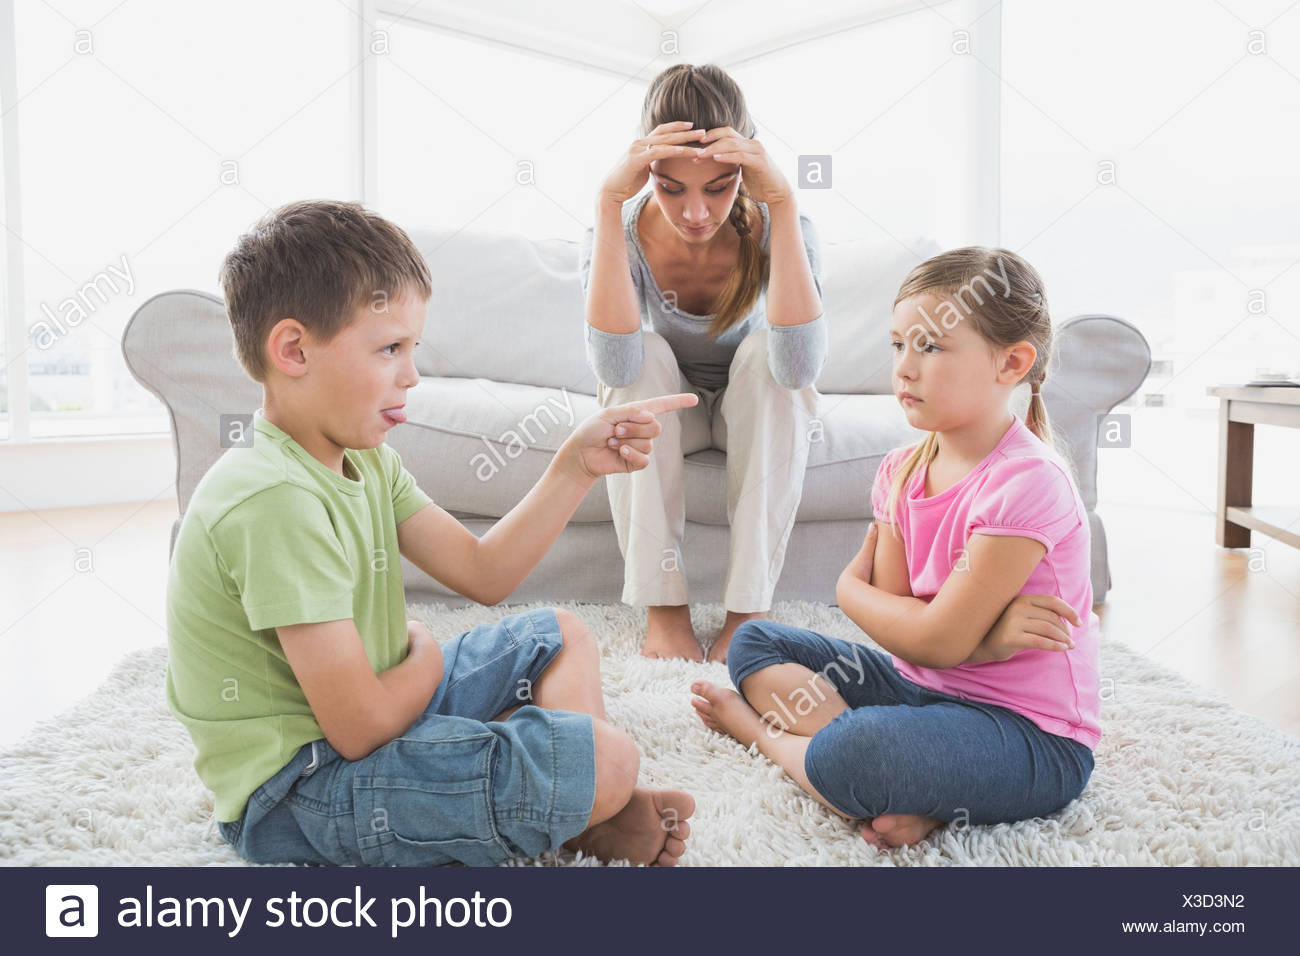 Fed up mother listening to her young children argue - Stock Image